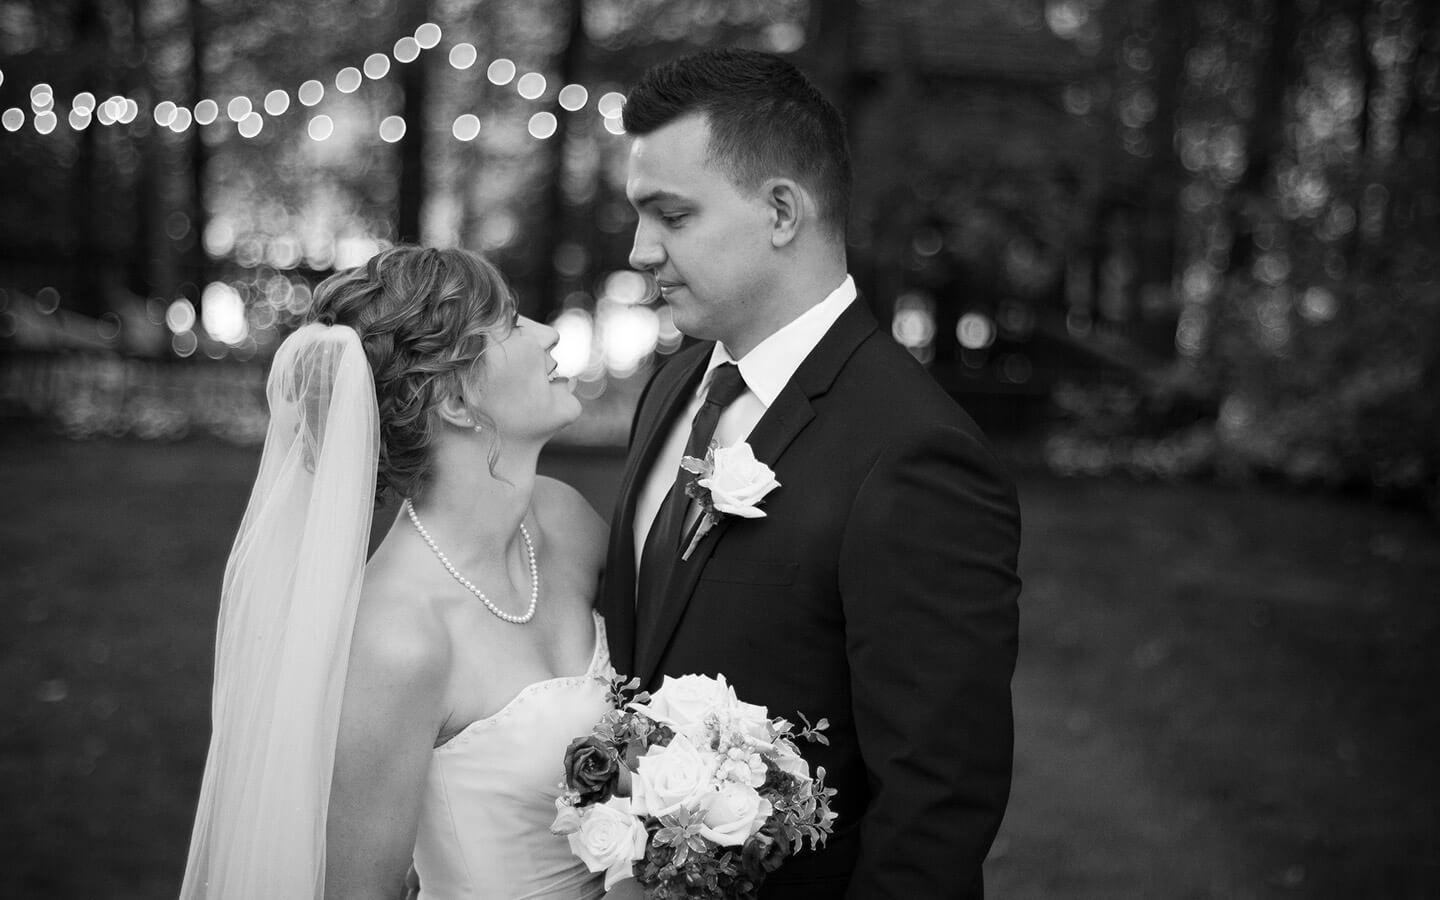 Michigan wedding, bride and groom in black and white